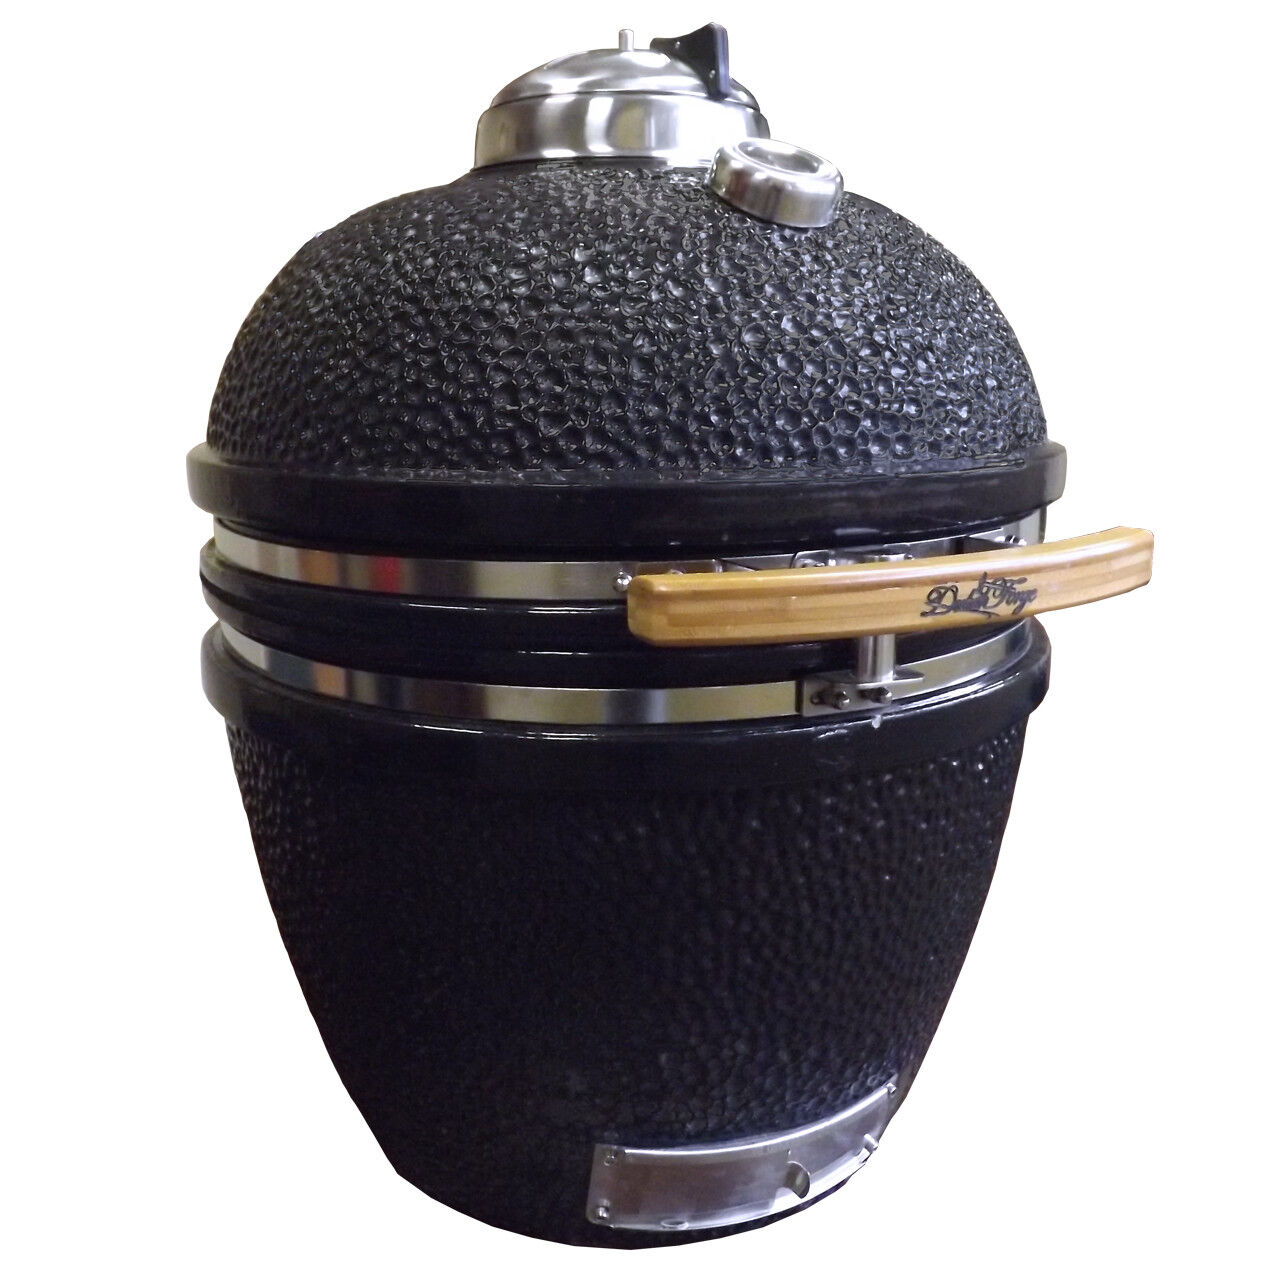 """Duluth Forge 19"""" Kamado Built-In Charcoal Grill with Smoker"""